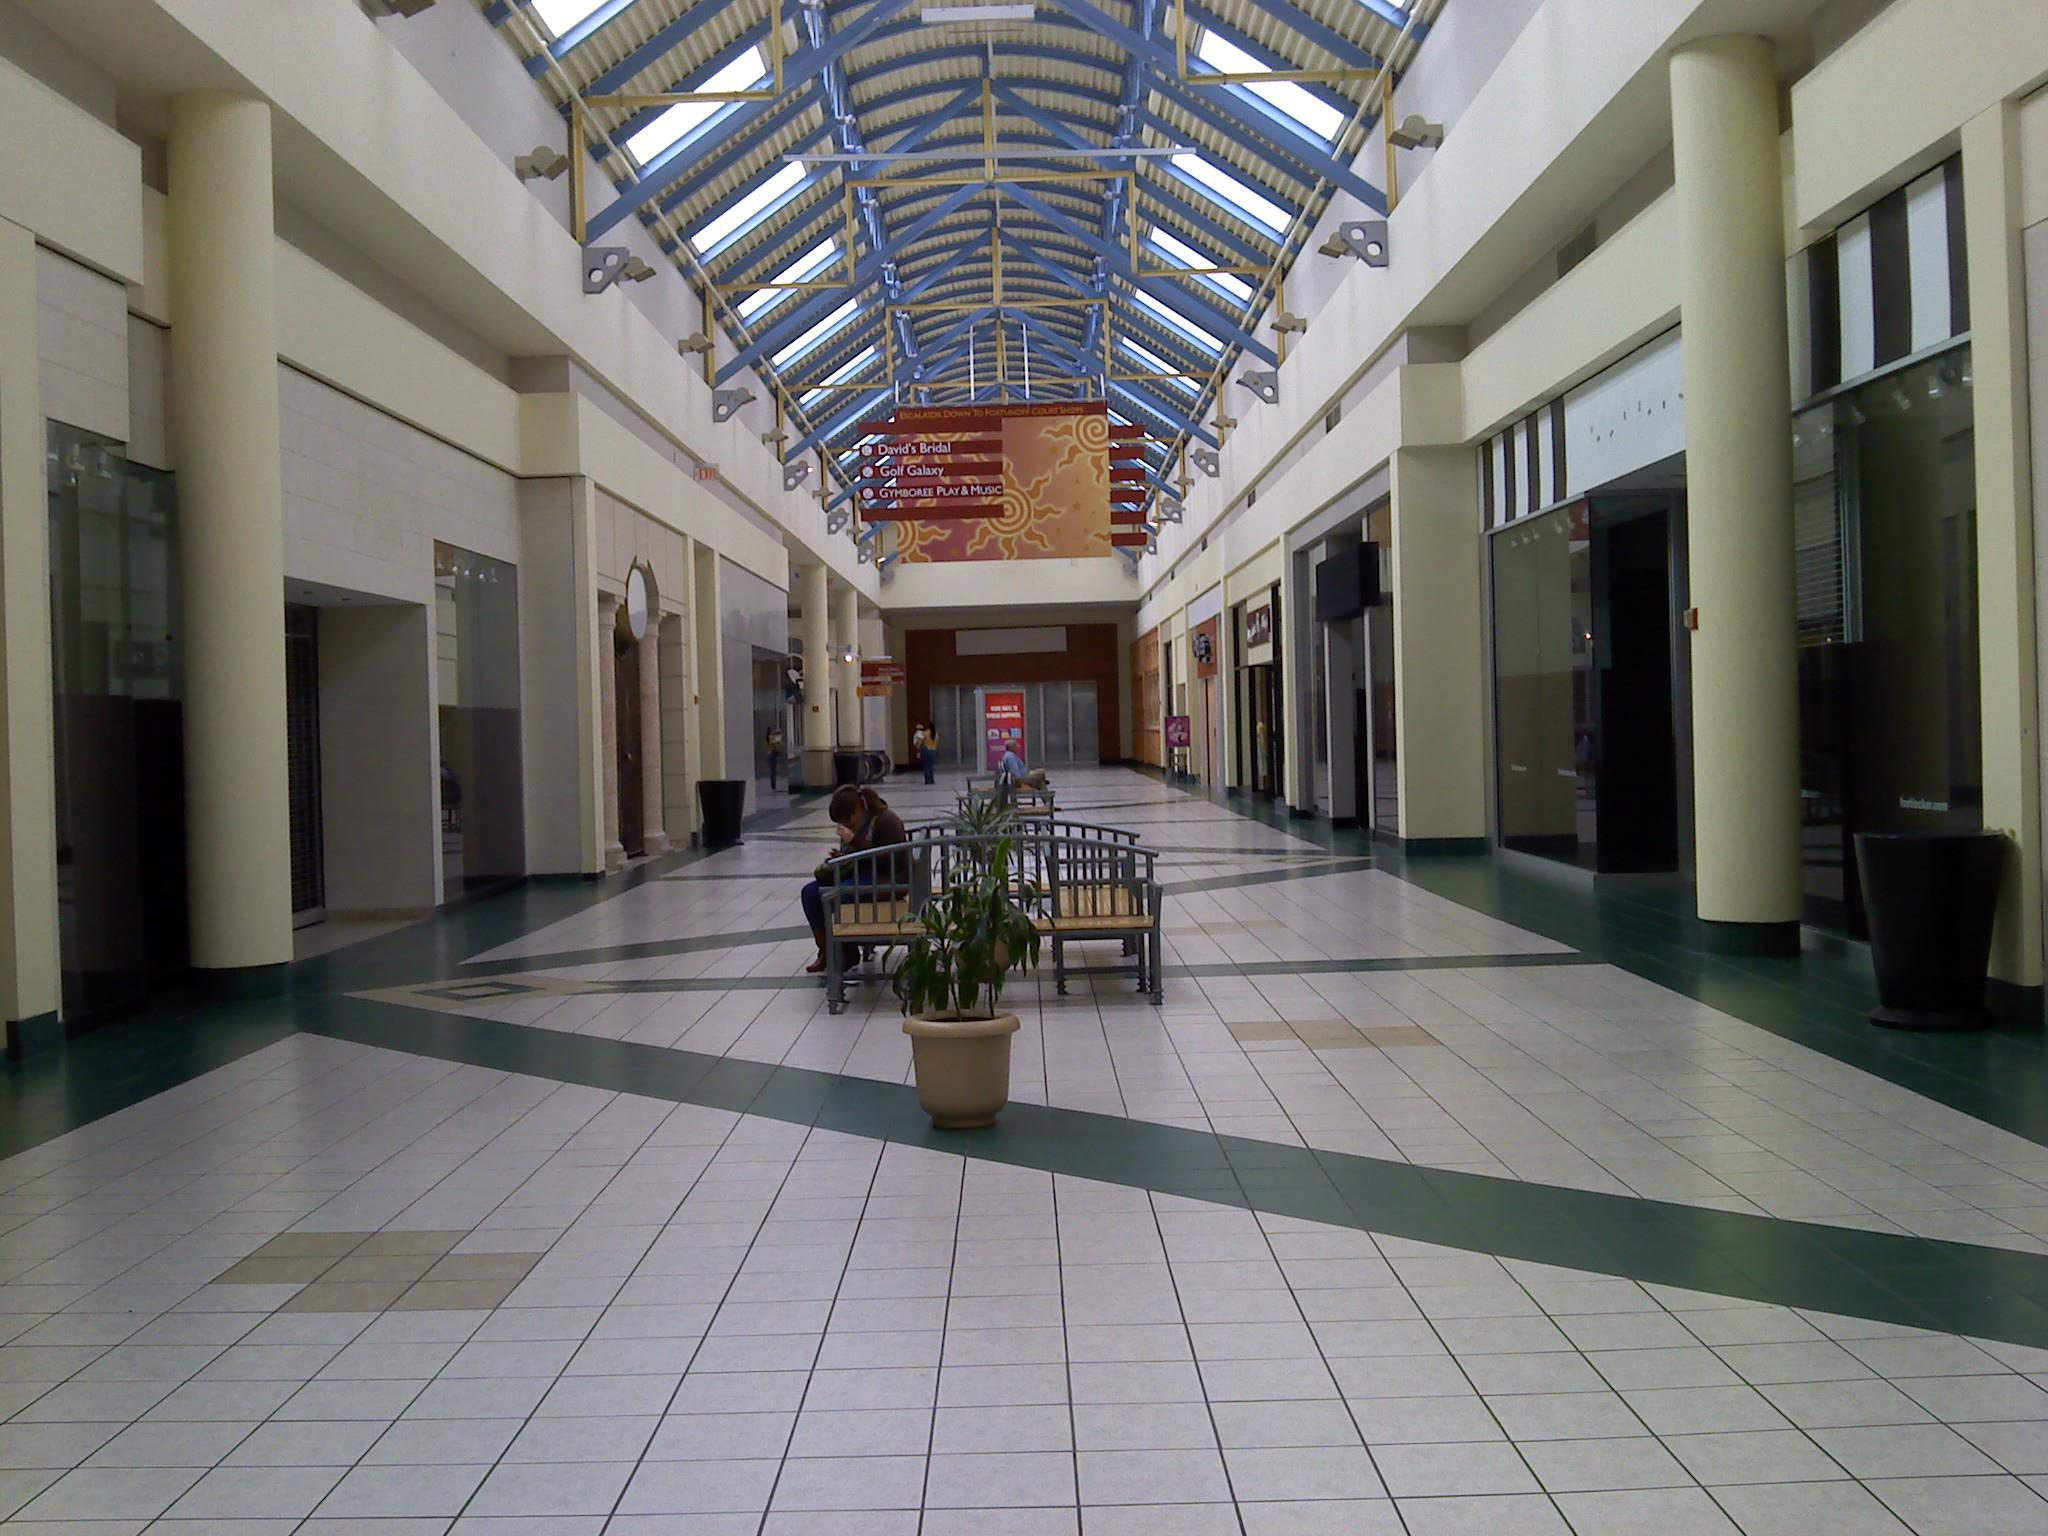 Home Design Outlet Center New Jersey File Mall At The Source Empty Jpg Wikimedia Commons